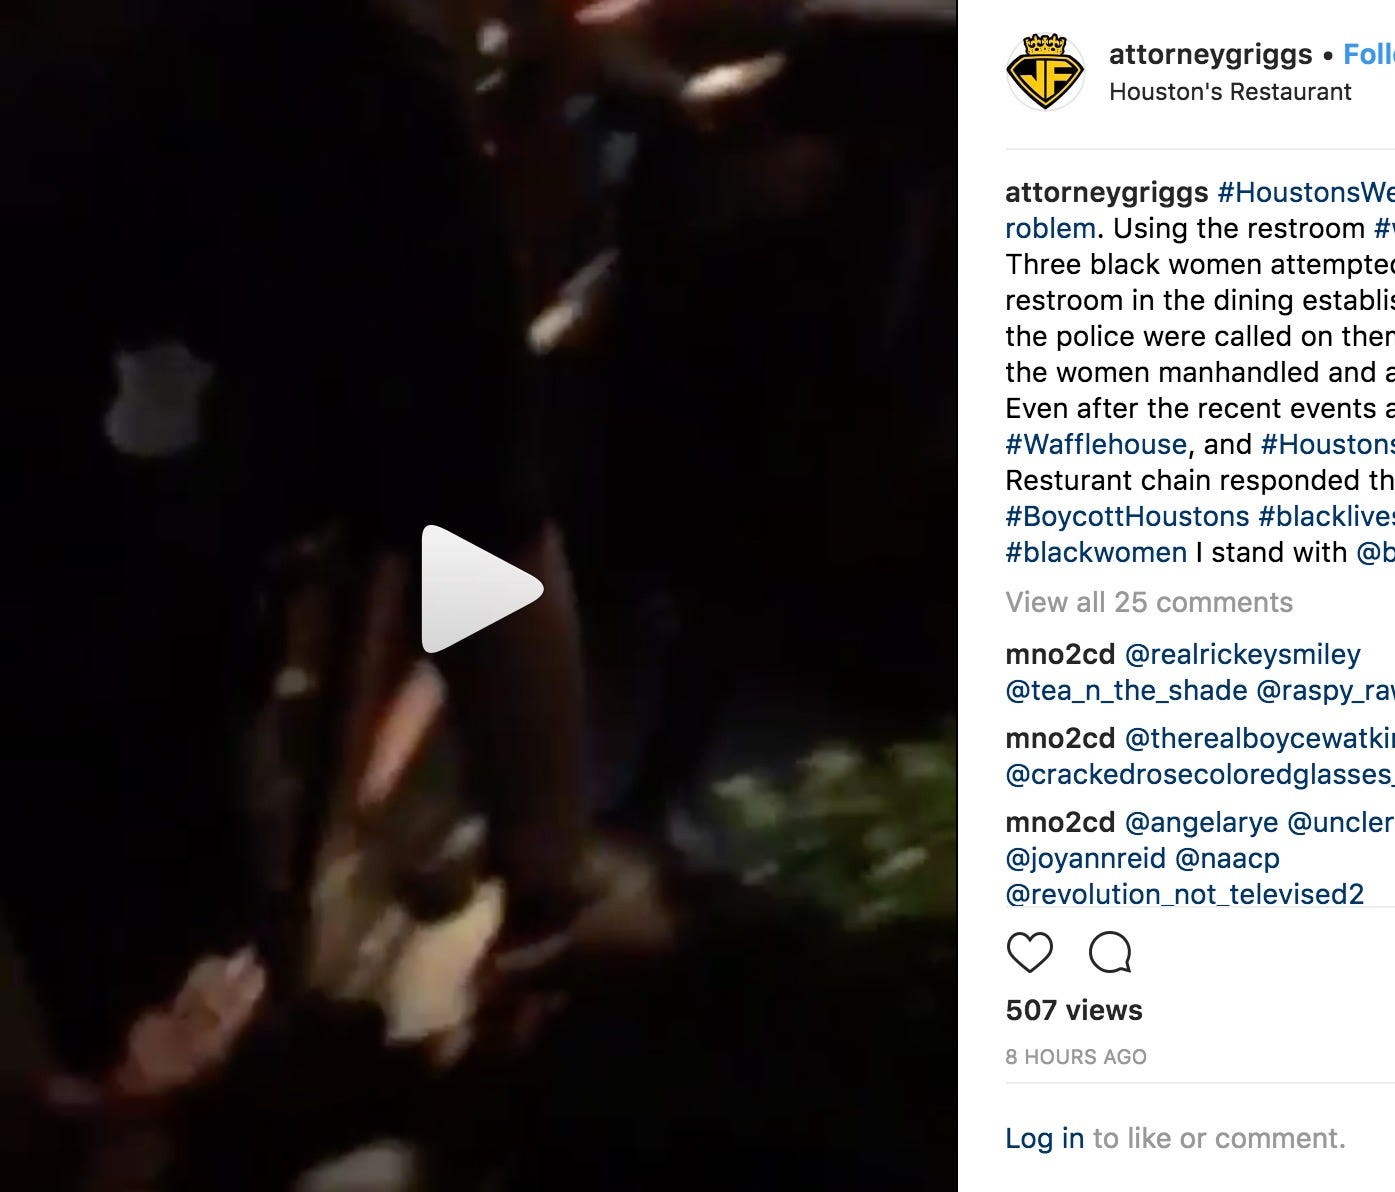 Video posted to Instagram shows the women on the ground, arguing with staff while a police officer handcuffs them.